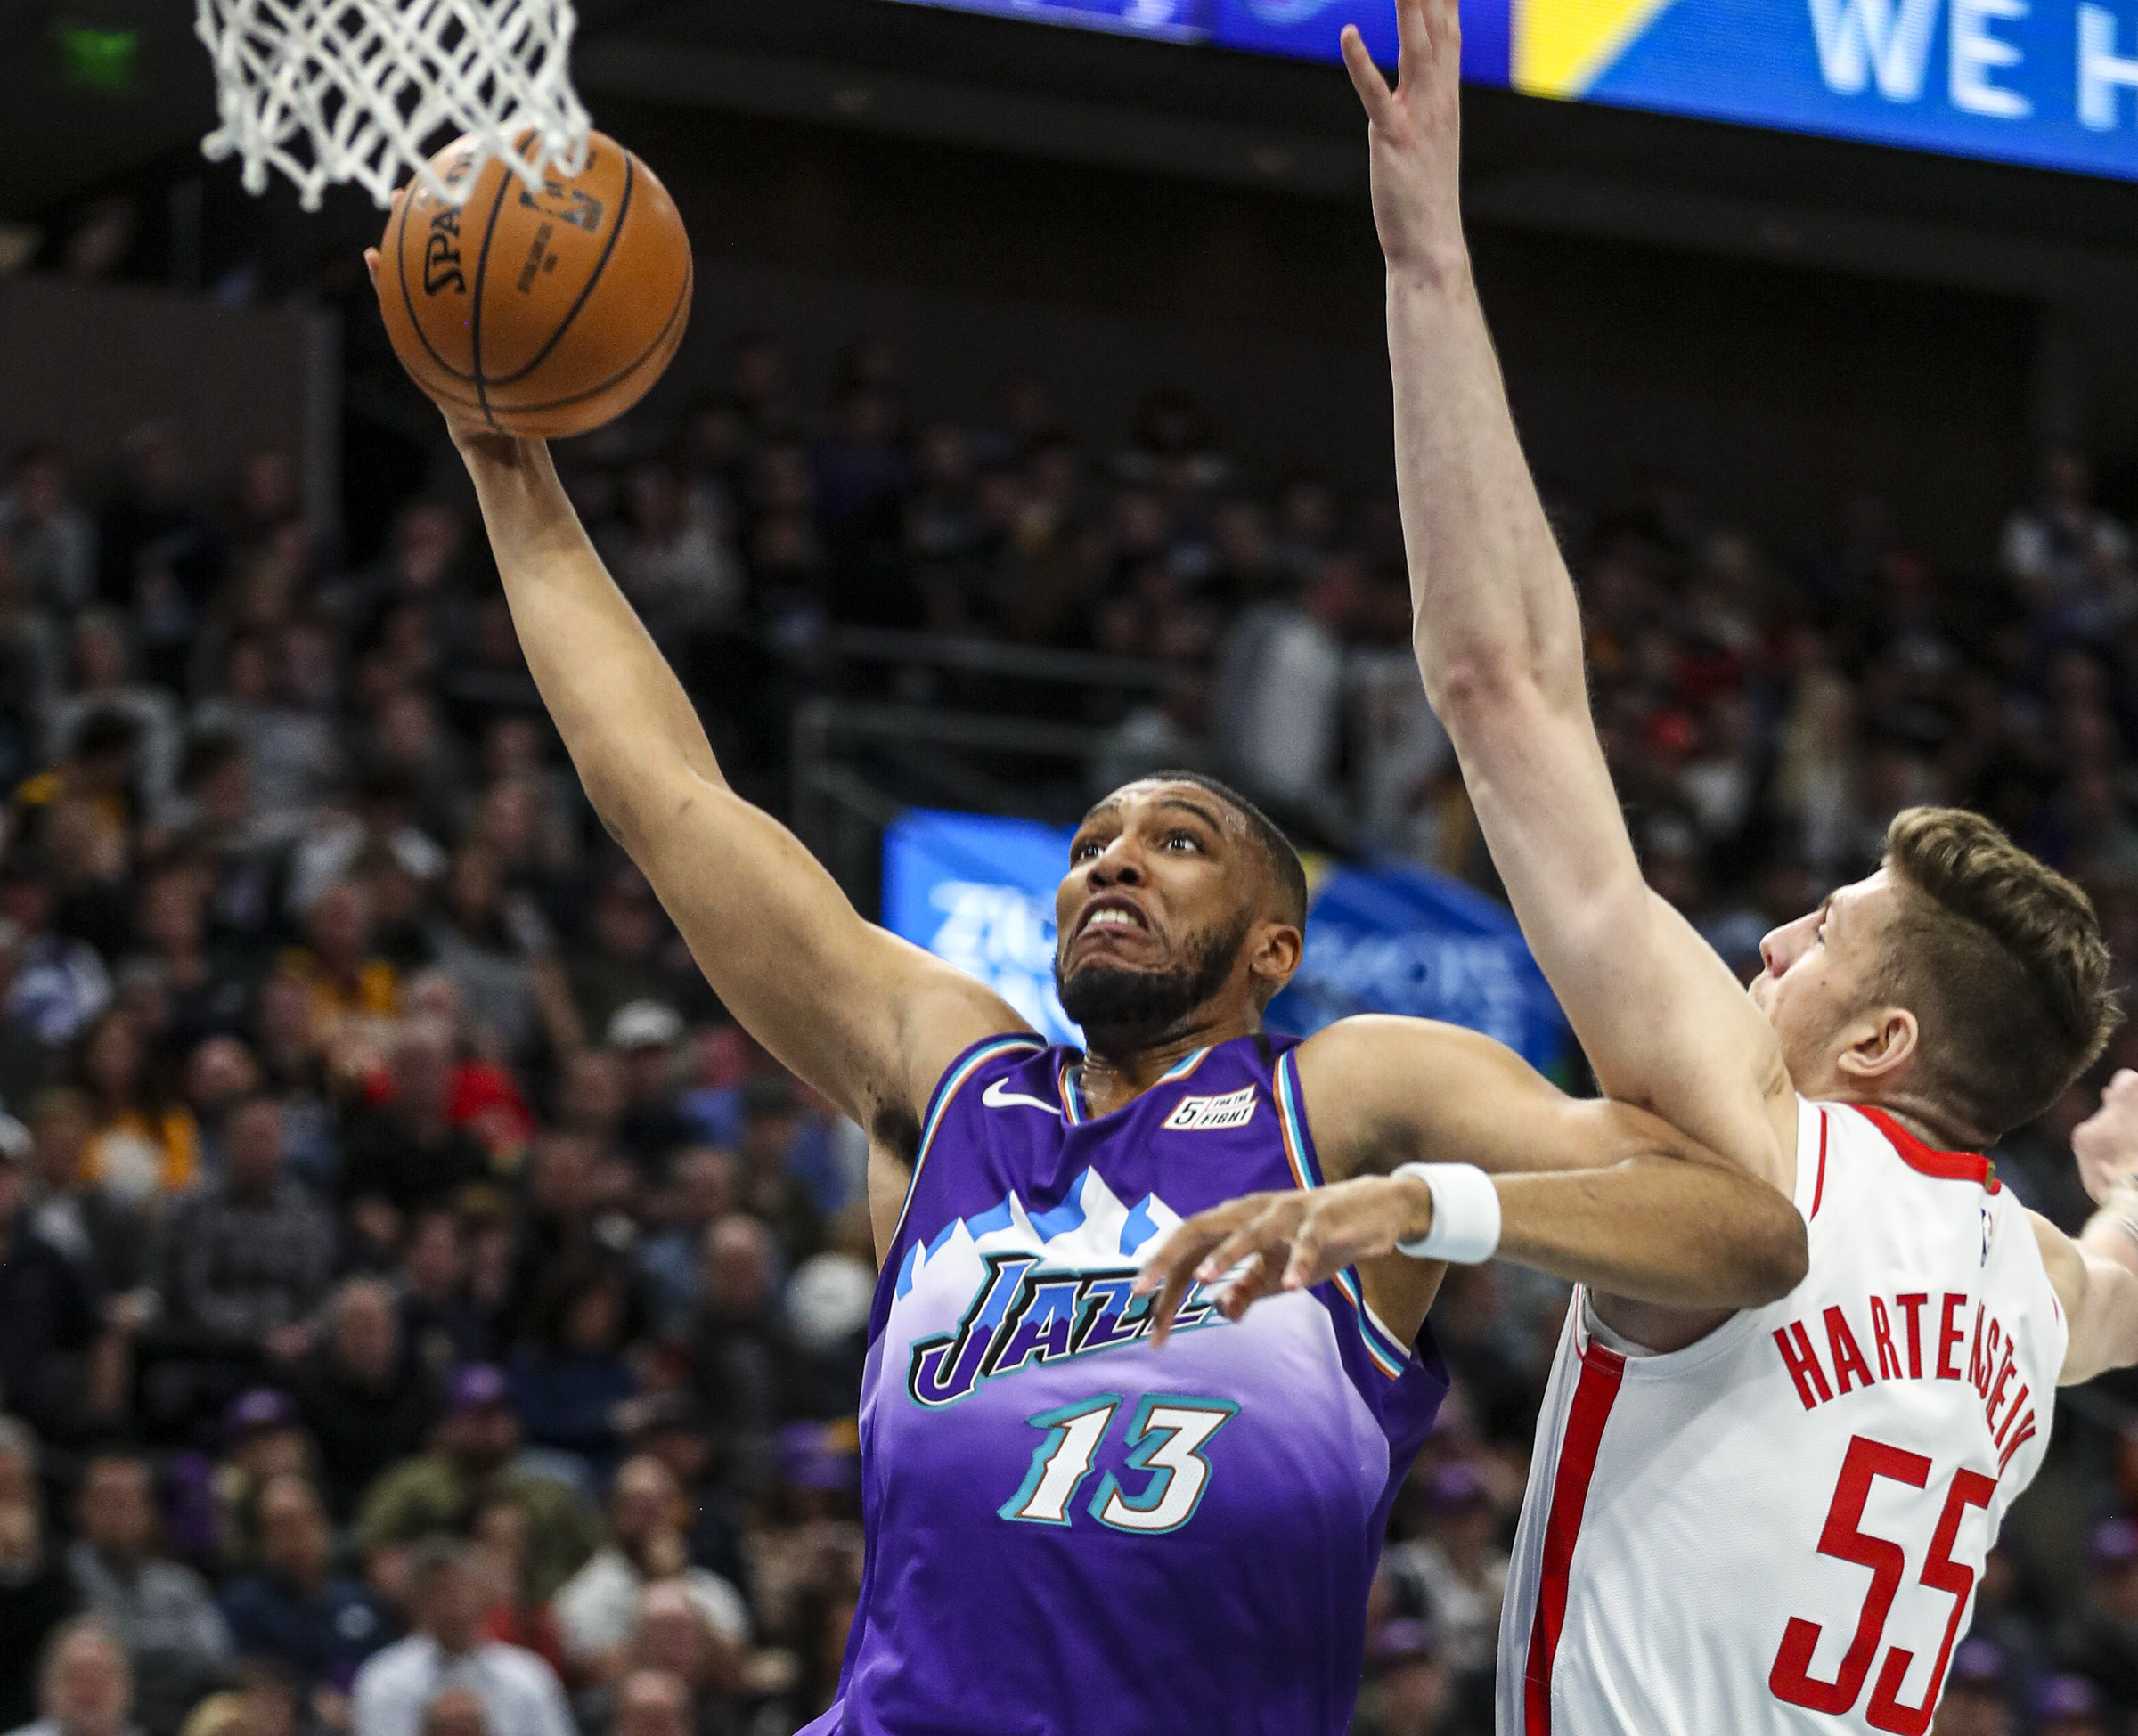 Utah Jazz center Tony Bradley (13) soars in for a dunk as he gets passed Houston Rockets center Isaiah Hartenstein (55) during an NBA game at Vivint Arena in Salt Lake City on Monday, Jan. 27, 2020.